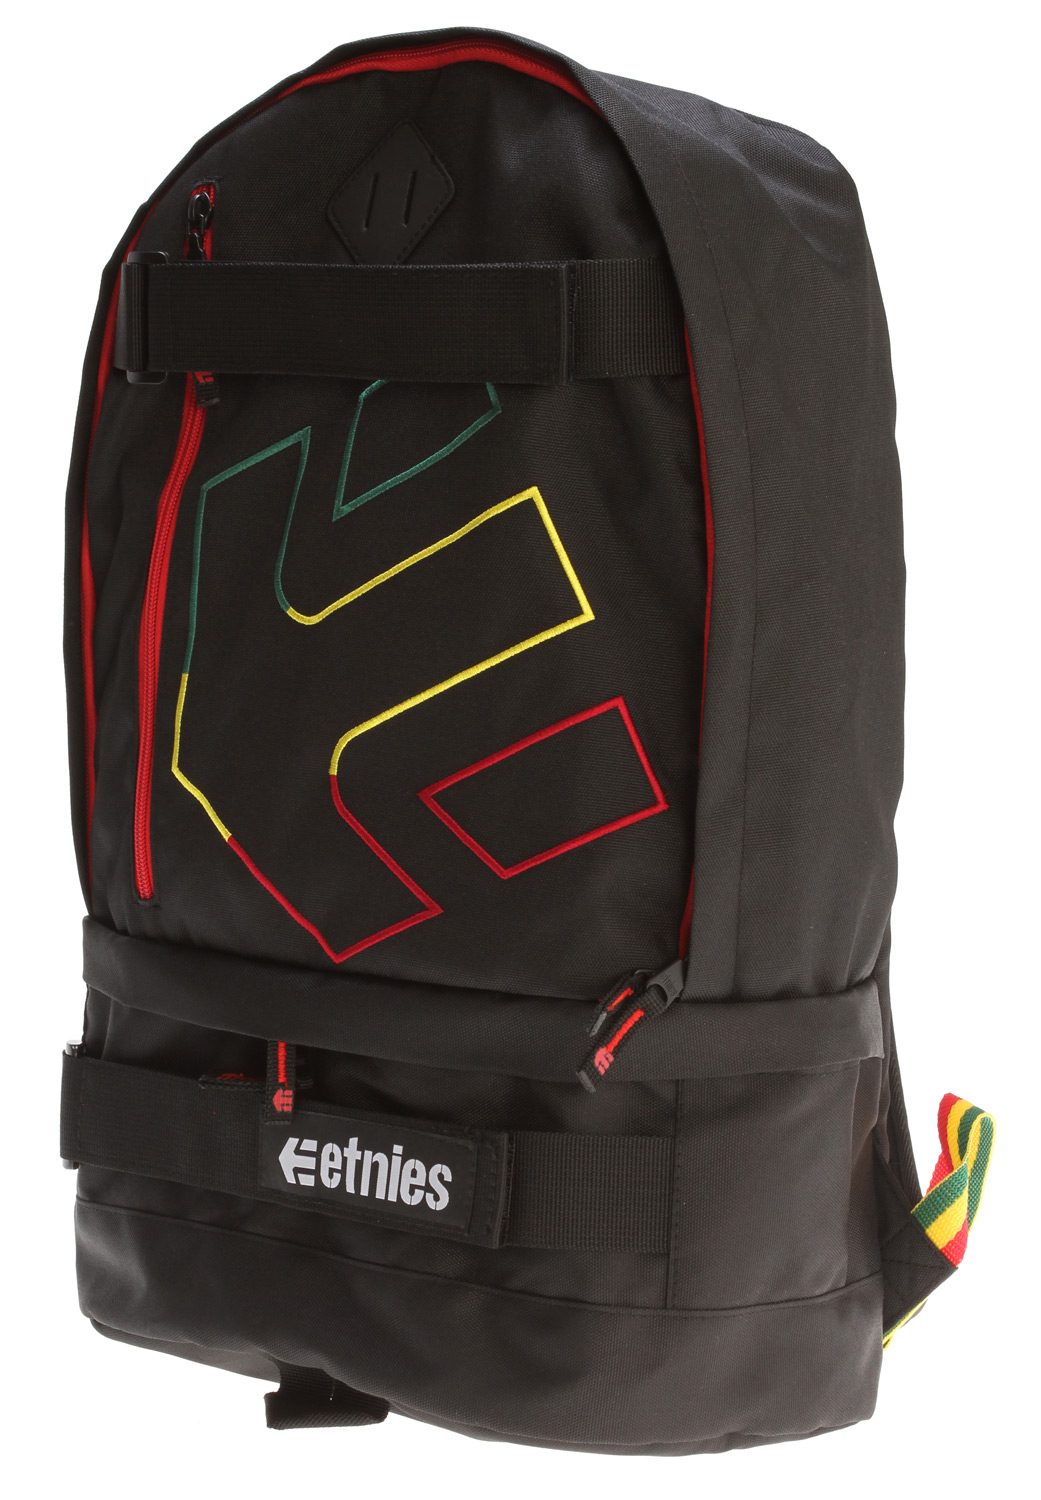 "Skateboard Key Features of the Etnies Transport Backpack: 4200 backpack with skate straps Shoe pocket and iPod pocket Embroidered artwork 10"" x 10.5"" x 6.5"" 1,150 cu in. - $33.95"